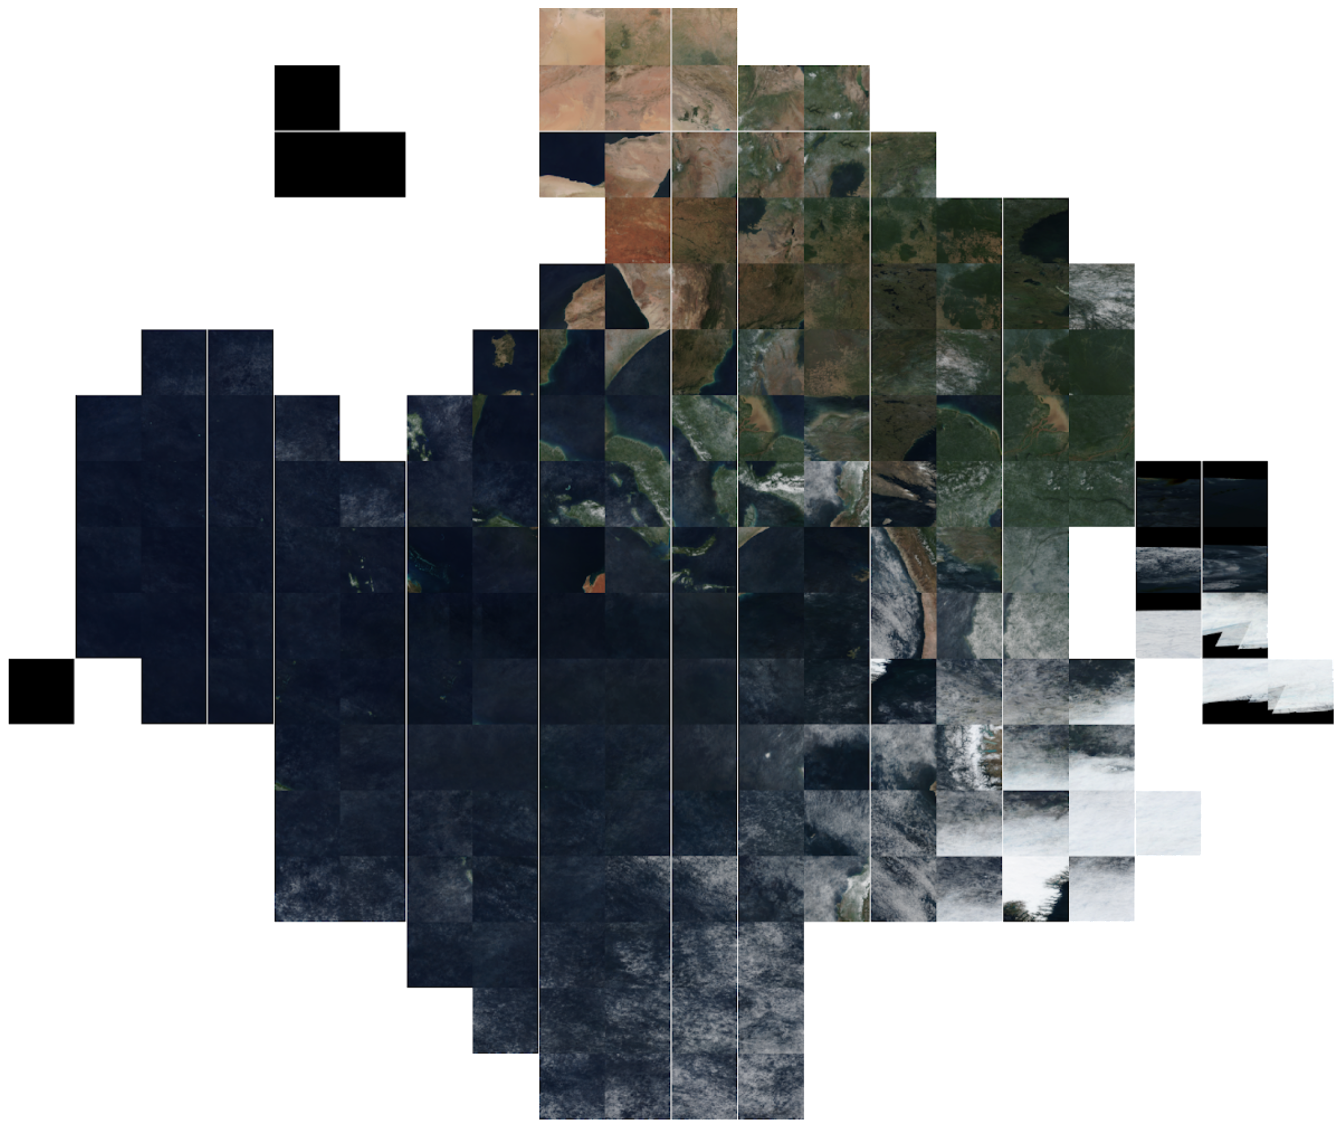 Mosaic of Worldview imagery tiles.